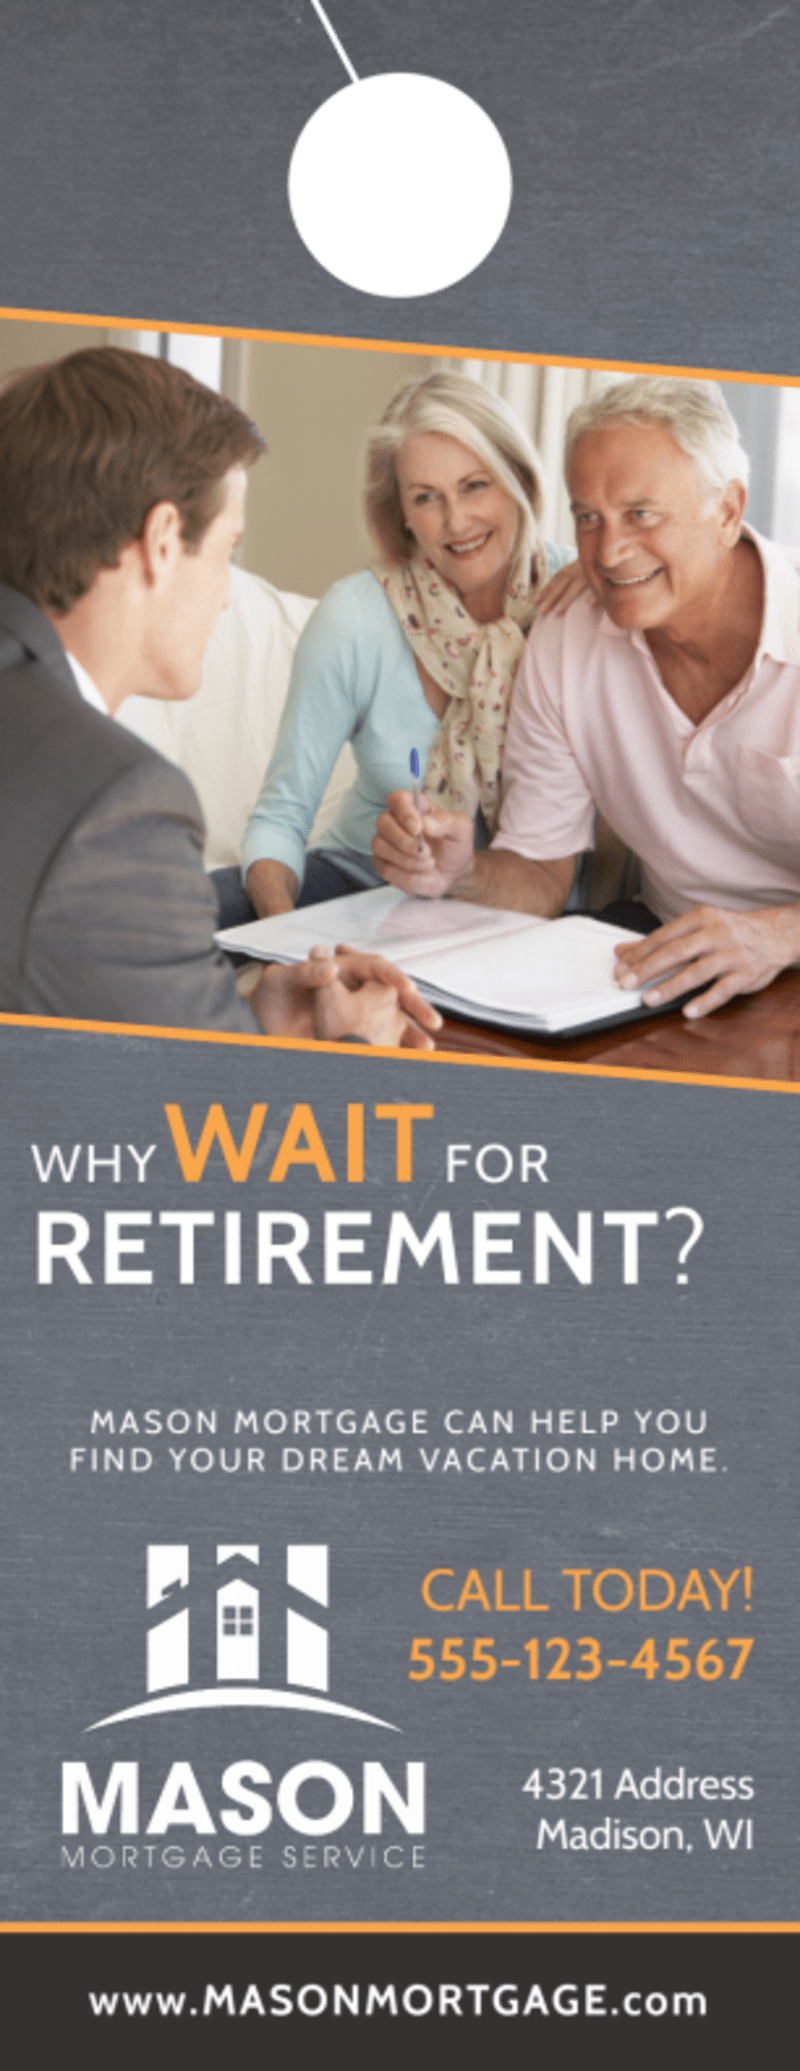 Mortgage Retirement Door Hanger Template Preview 2